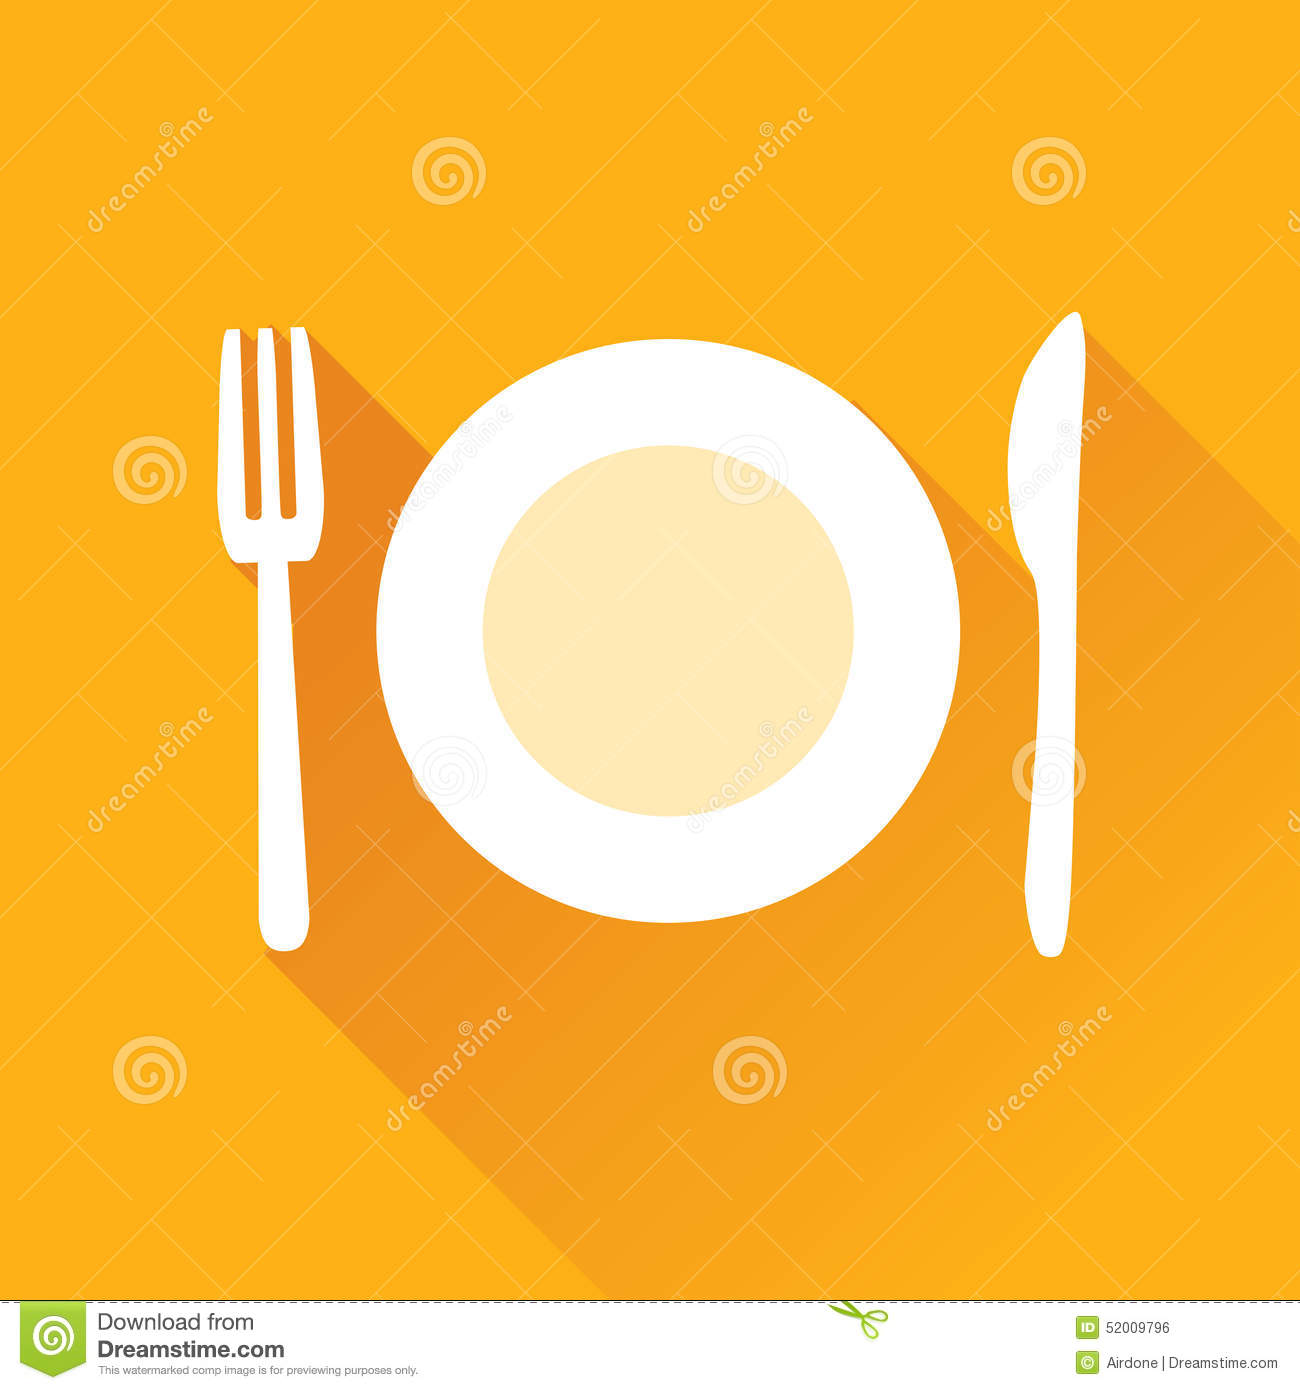 Restaurant Flat Icon Stock Vector Image 52009796 : restaurant flat icon vector illustration plate fork knife orange square background diagonal shadow 52009796 from www.dreamstime.com size 1300 x 1390 jpeg 101kB